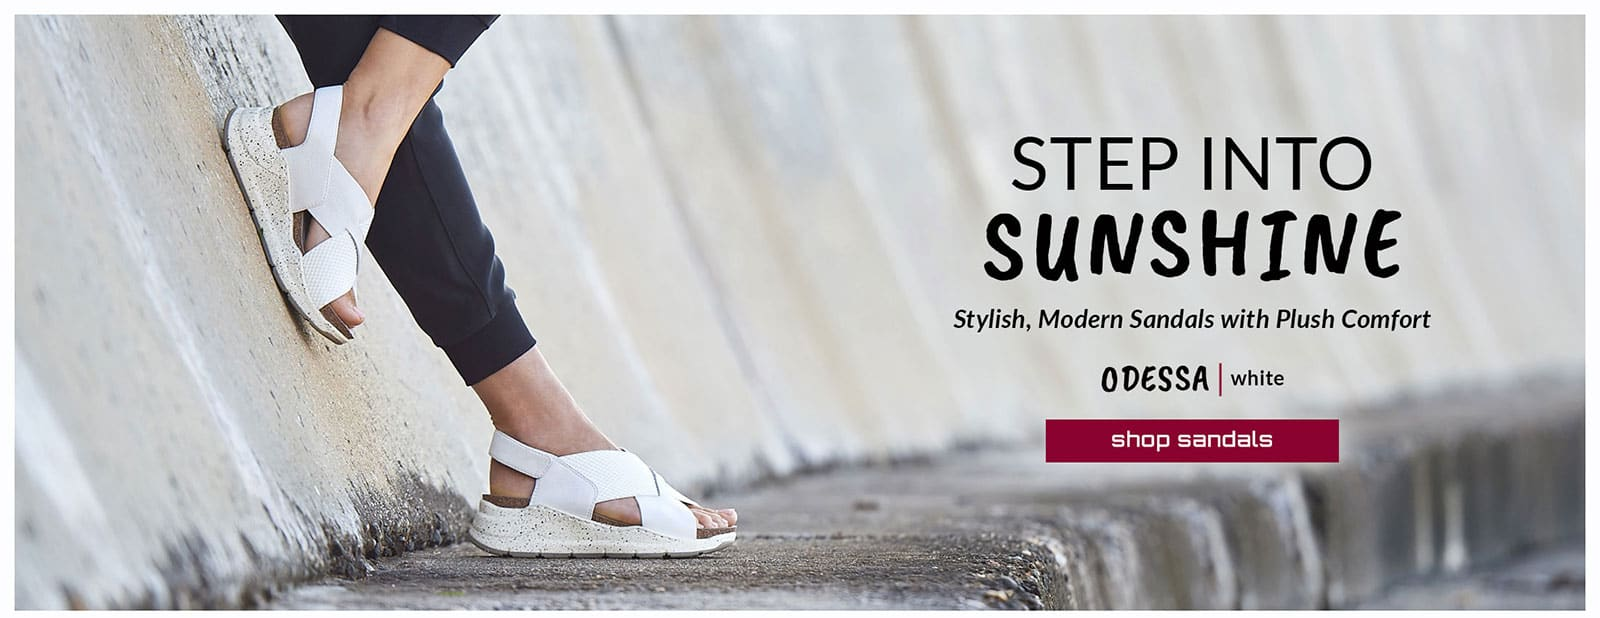 Step Into Sunshine. Stylish, Modern Sandals with Plush Comfort Featured style: Odessa sandal in white. Shop Sandals.